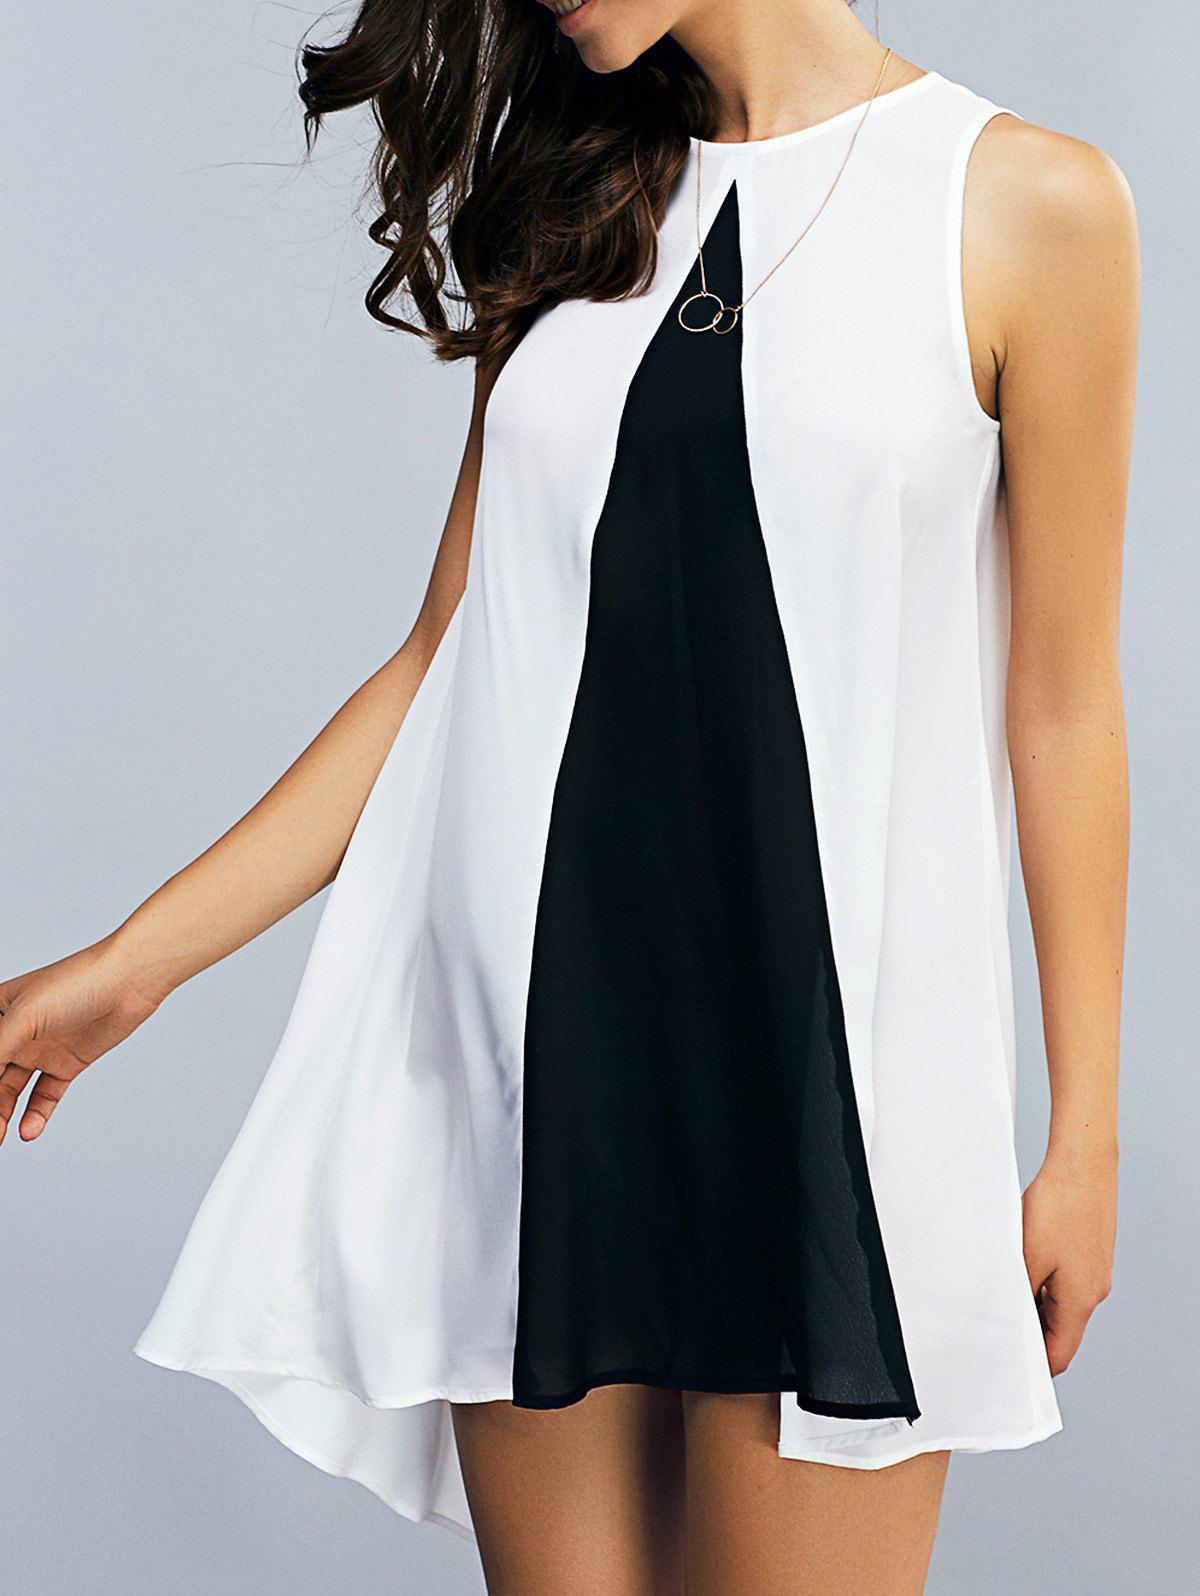 Color Block Asymmetrical Chiffon Tank Dress - WHITE/BLACK S